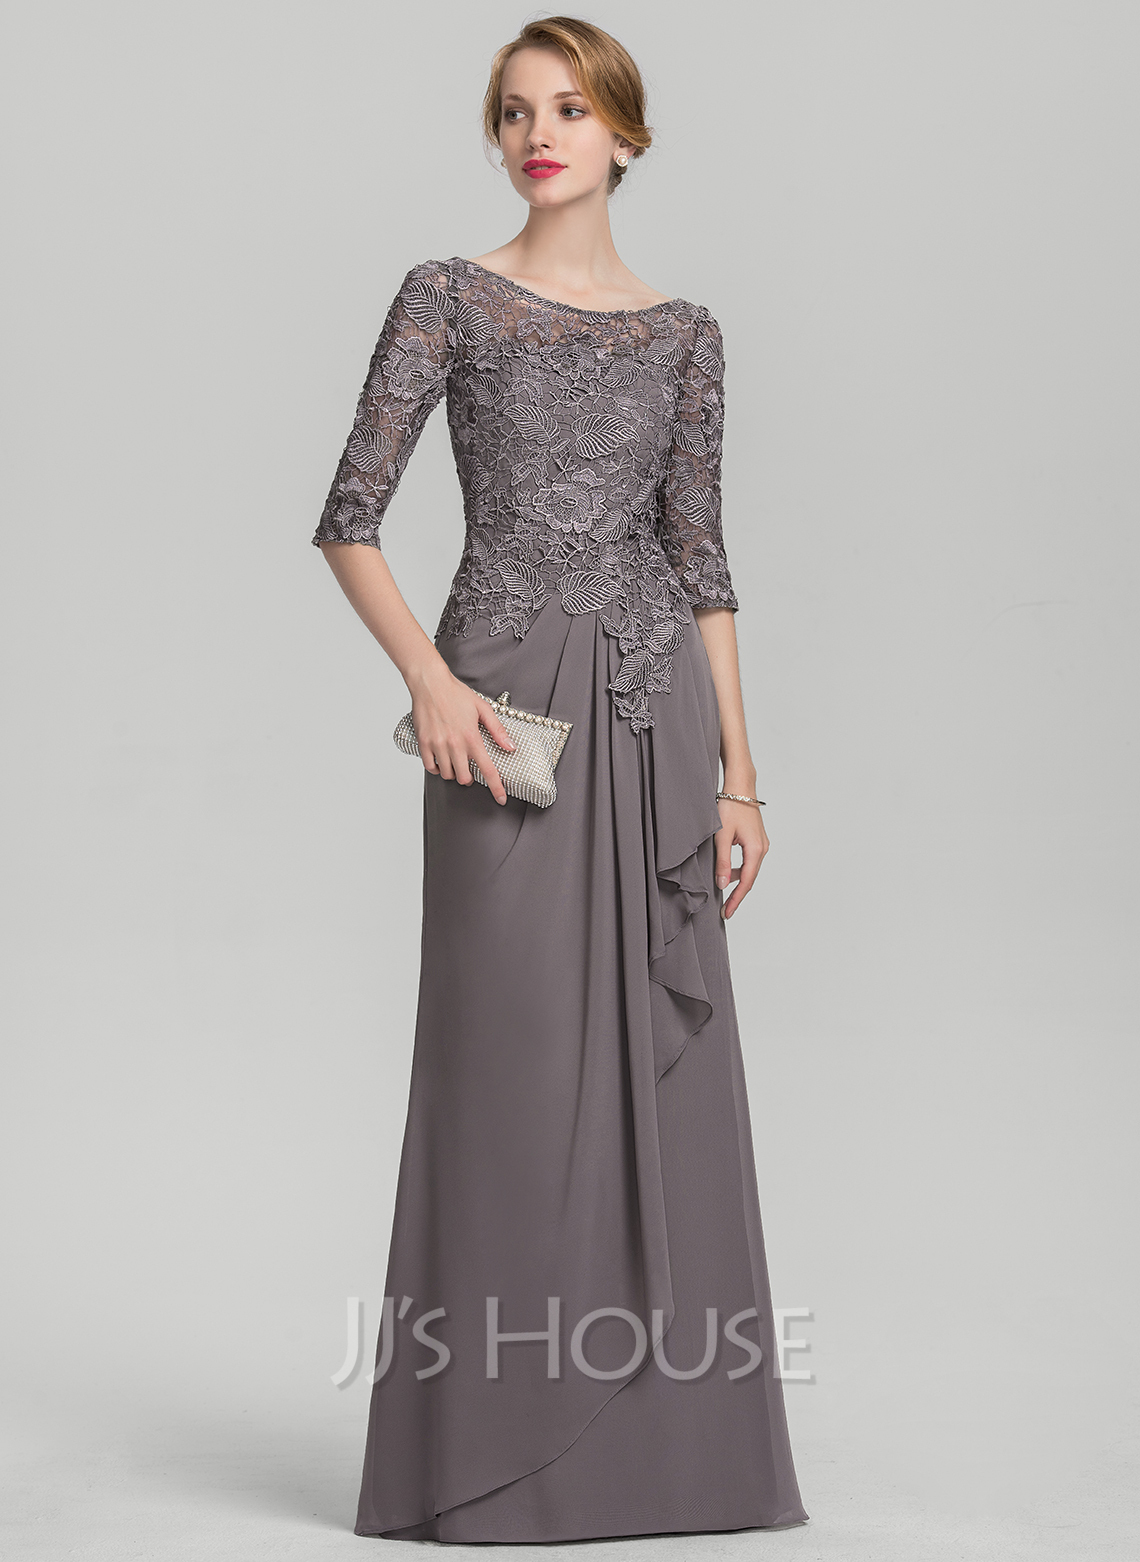 A-Line Princess Scoop Neck Floor-Length Chiffon Lace Mother of the Bride 2ea44f93b024